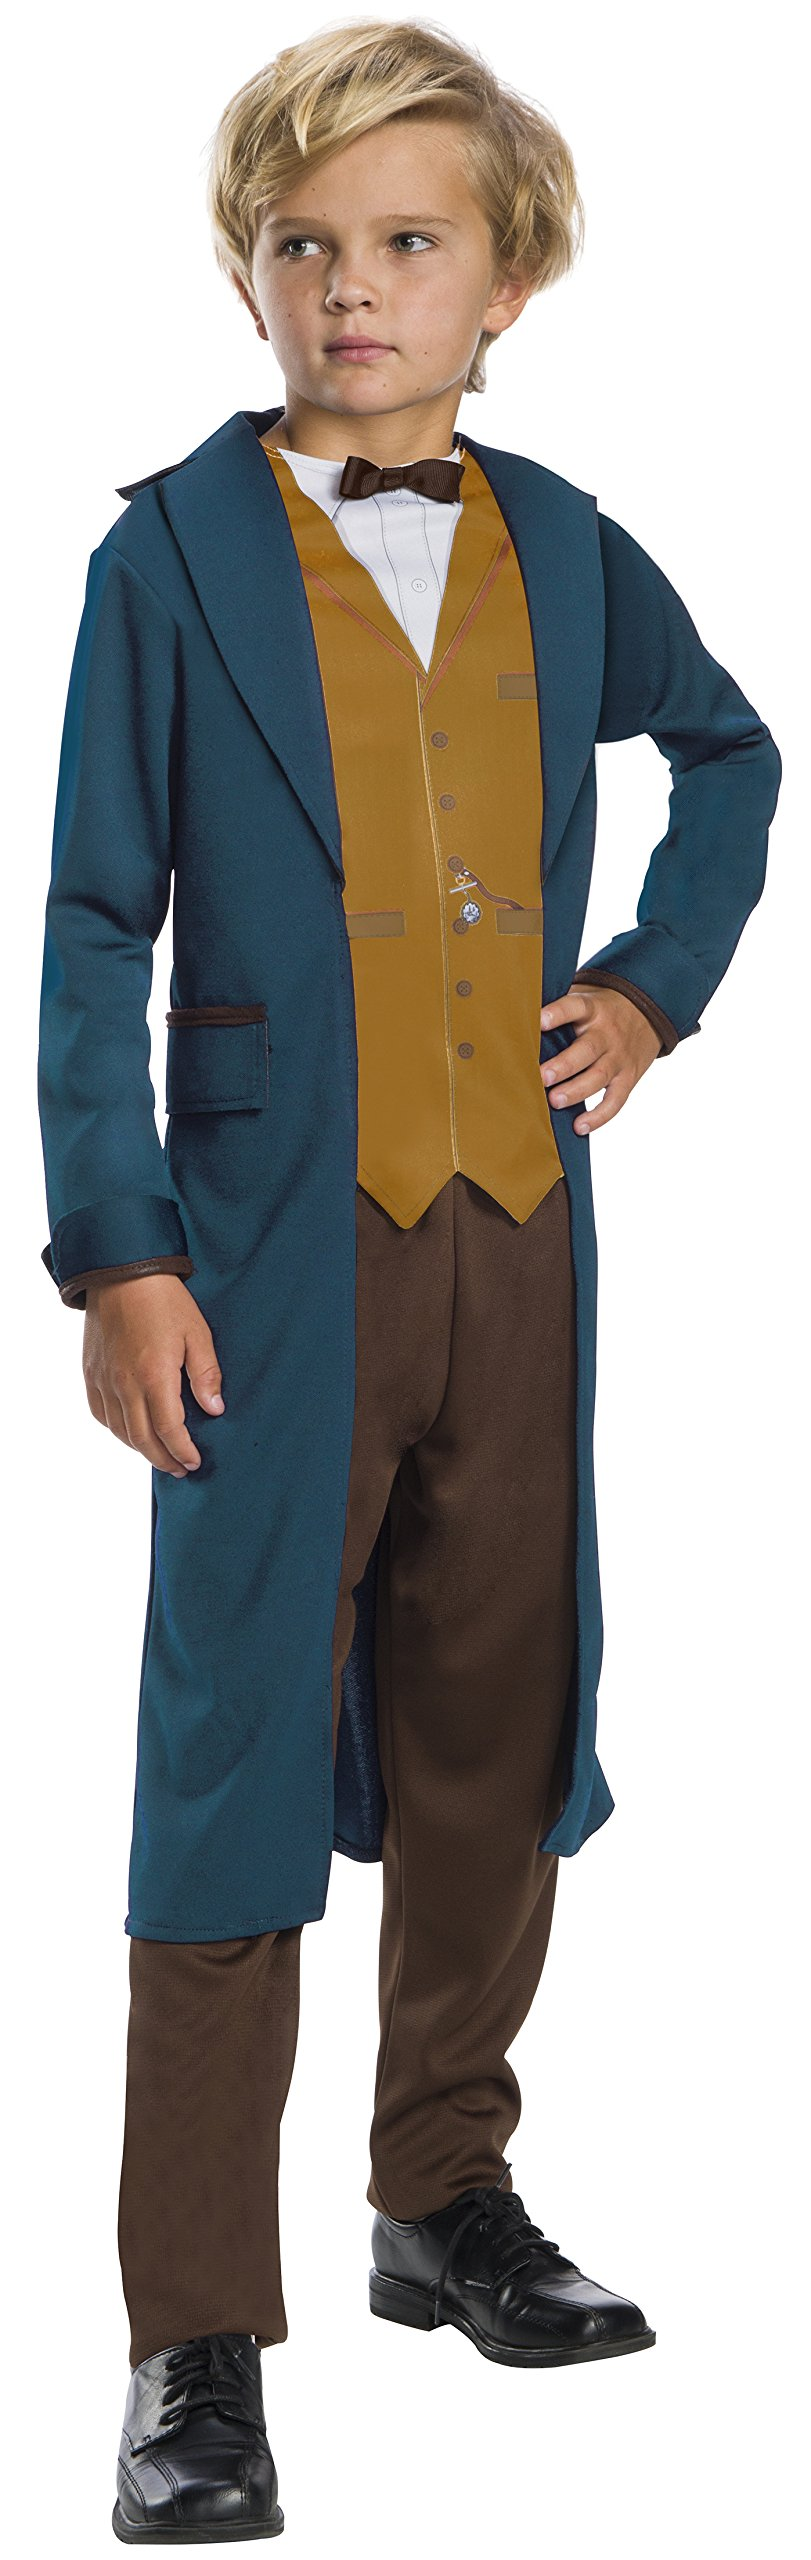 Rubie's Costume Boys Fantastic Beasts & Where to Find Them Newt Scamander Costume, Large, Multicolor